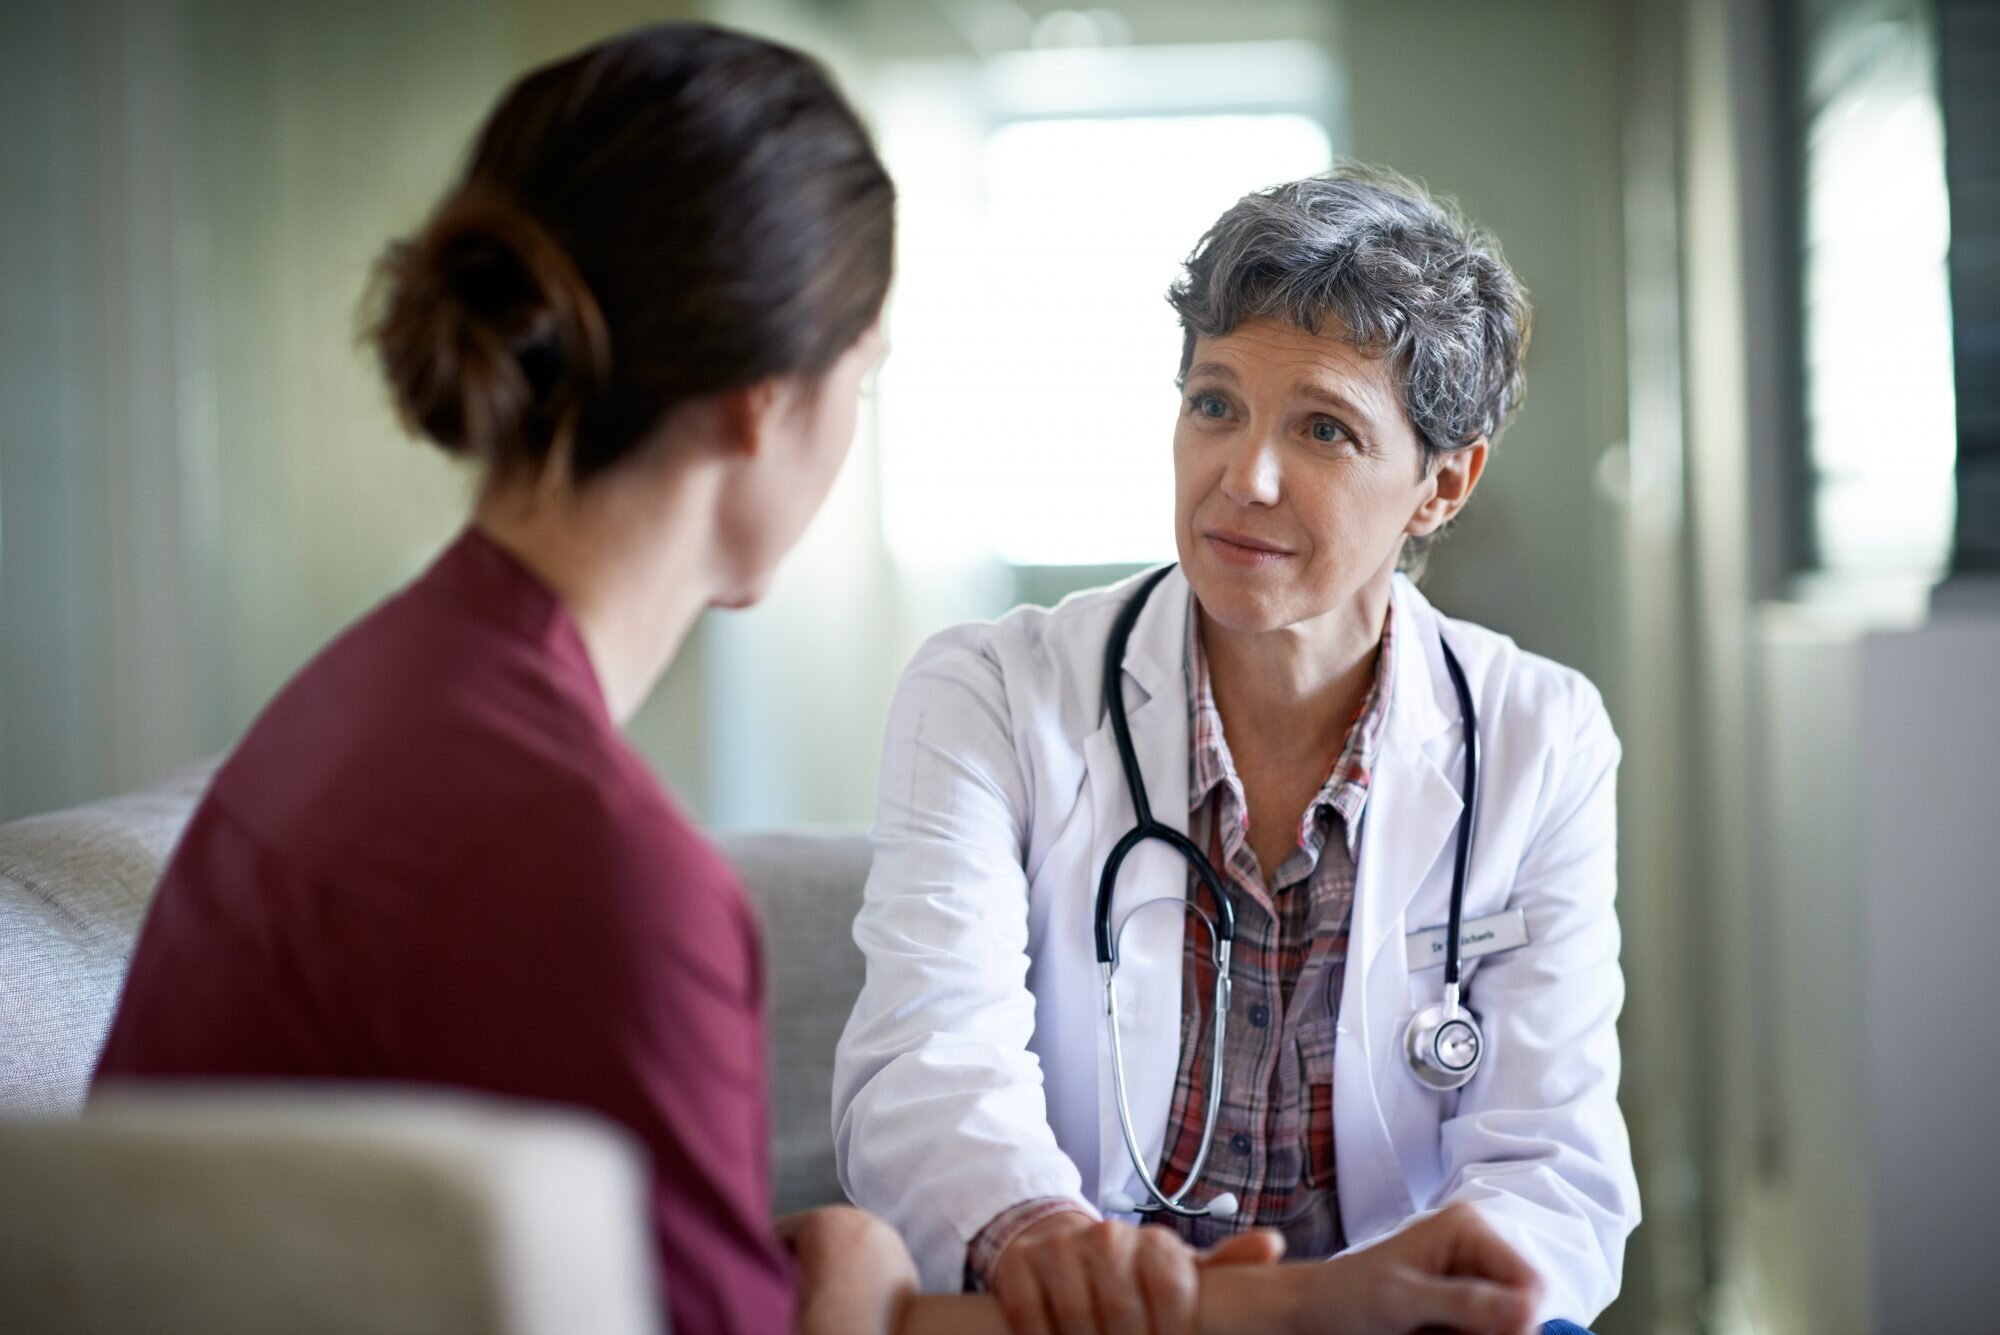 5 Questions to Ask Your Doctor About Sleep Apnea - Health